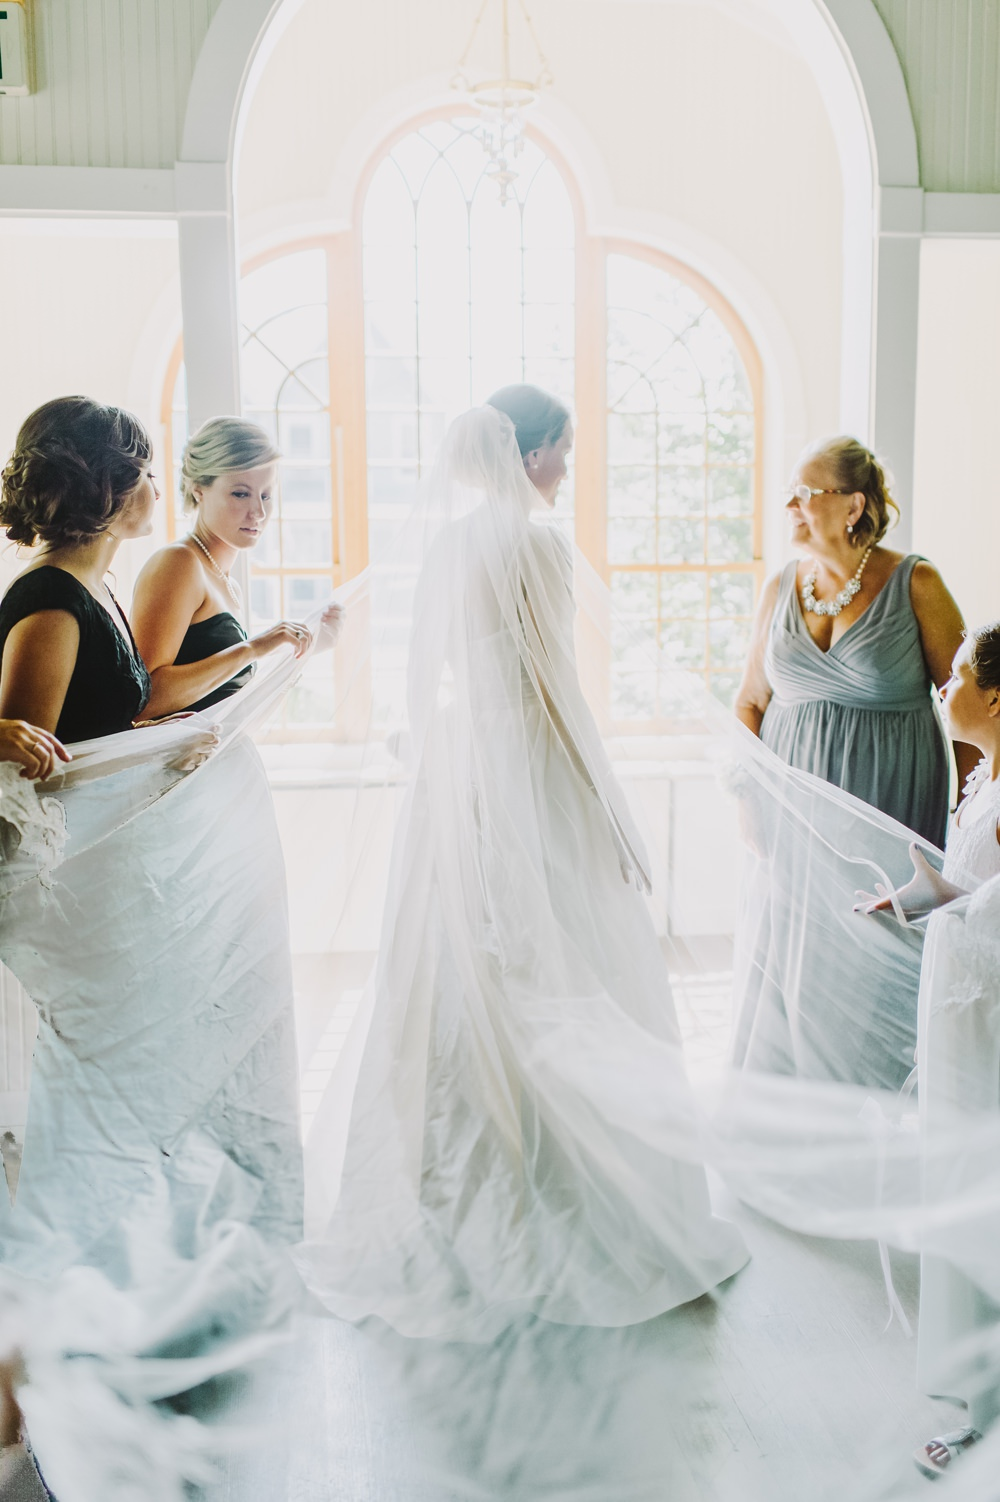 Dress Gown Bride Bridal Princess Straps Veil Train Maryland Wedding L. Hewitt Photography